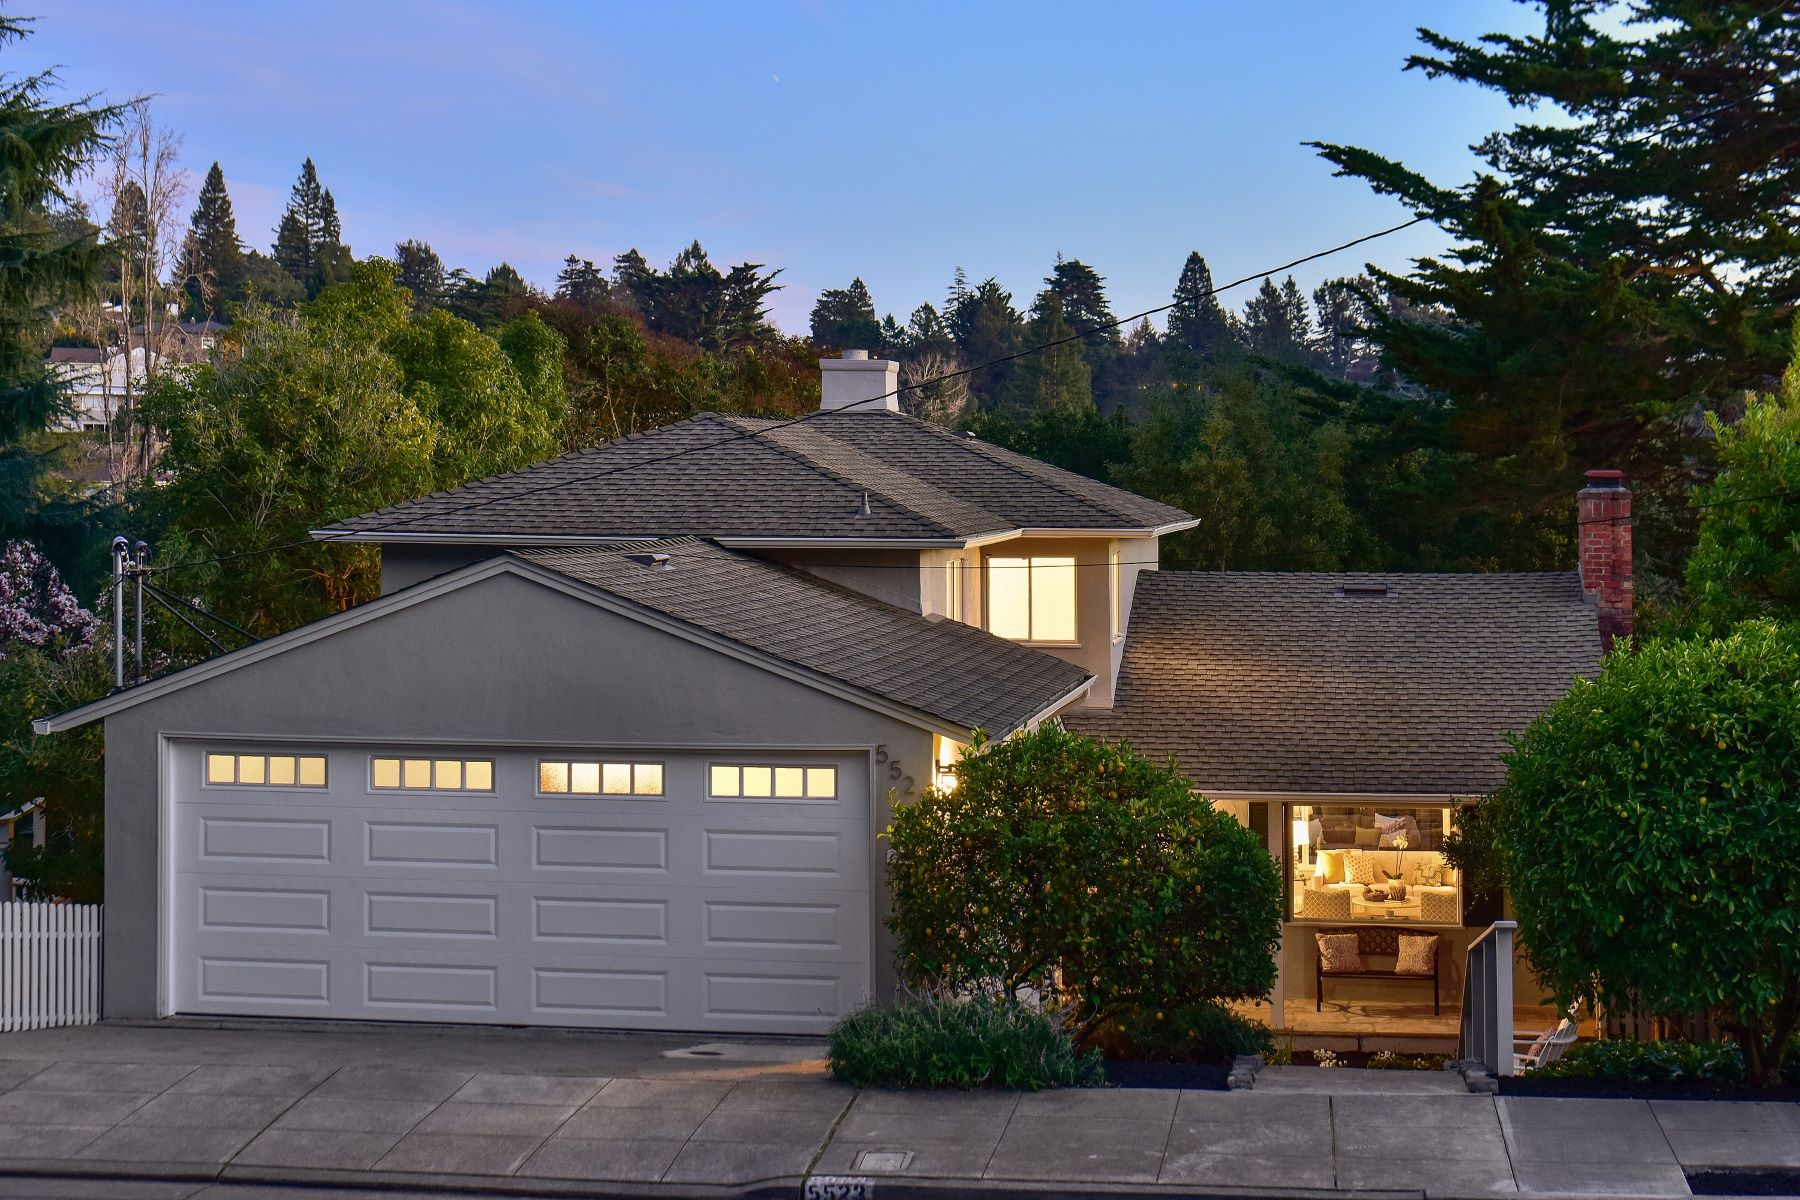 Single Family Homes for Sale at Updated Upper Rockridge Traditional 5523 Masonic Avenue Oakland, California 94618 United States